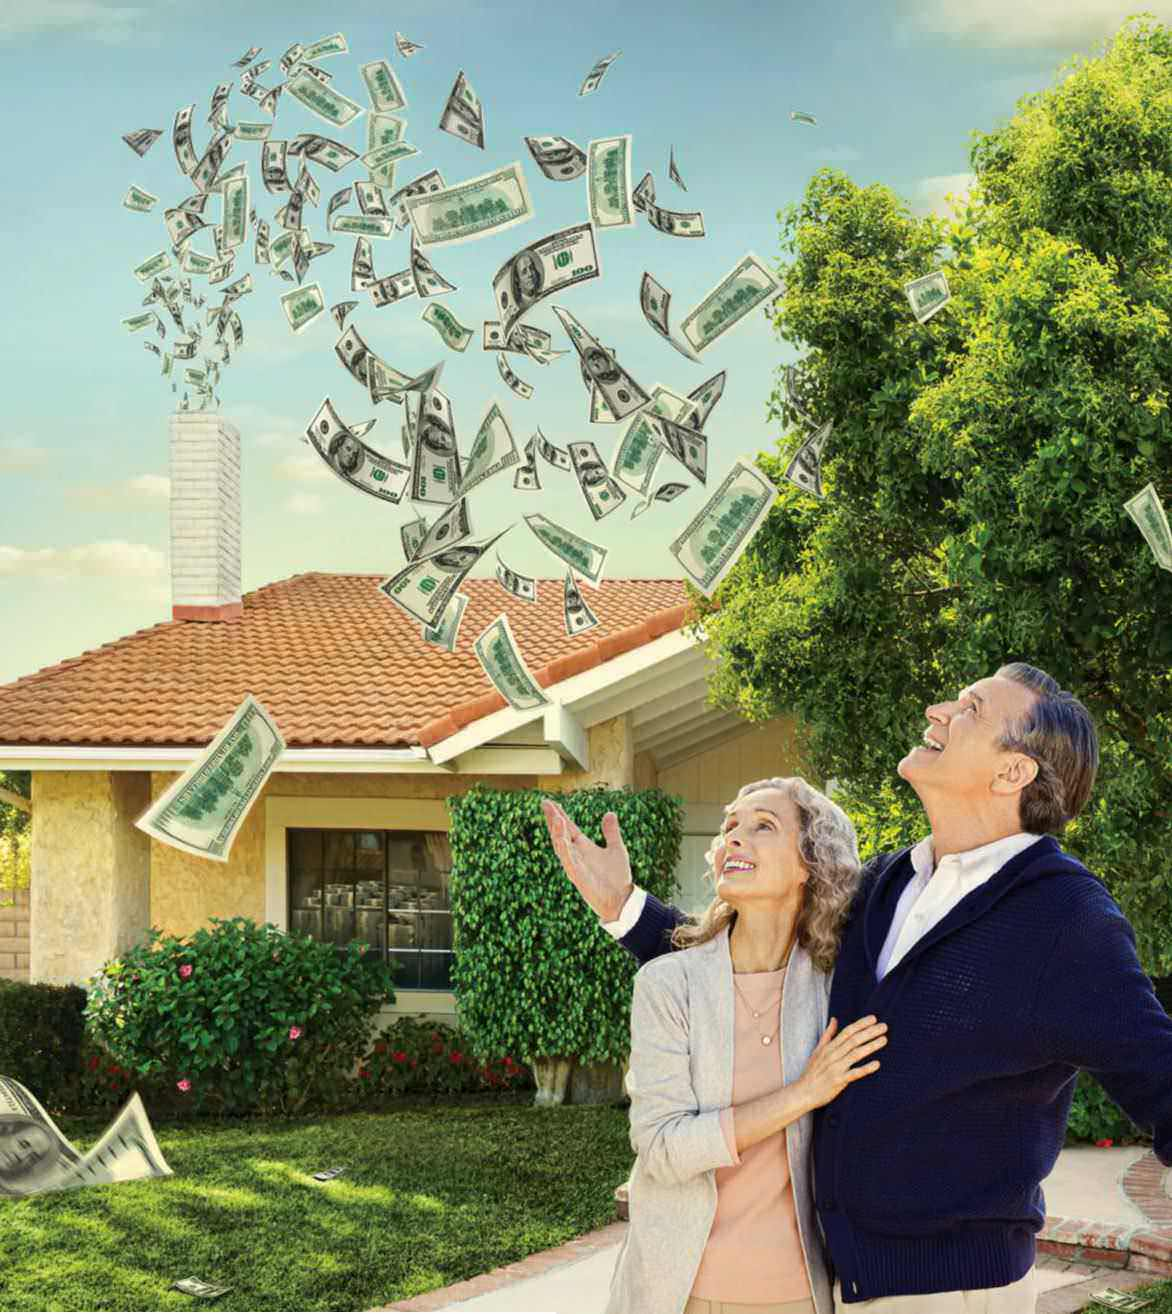 Retirement Mortgage Income Finance